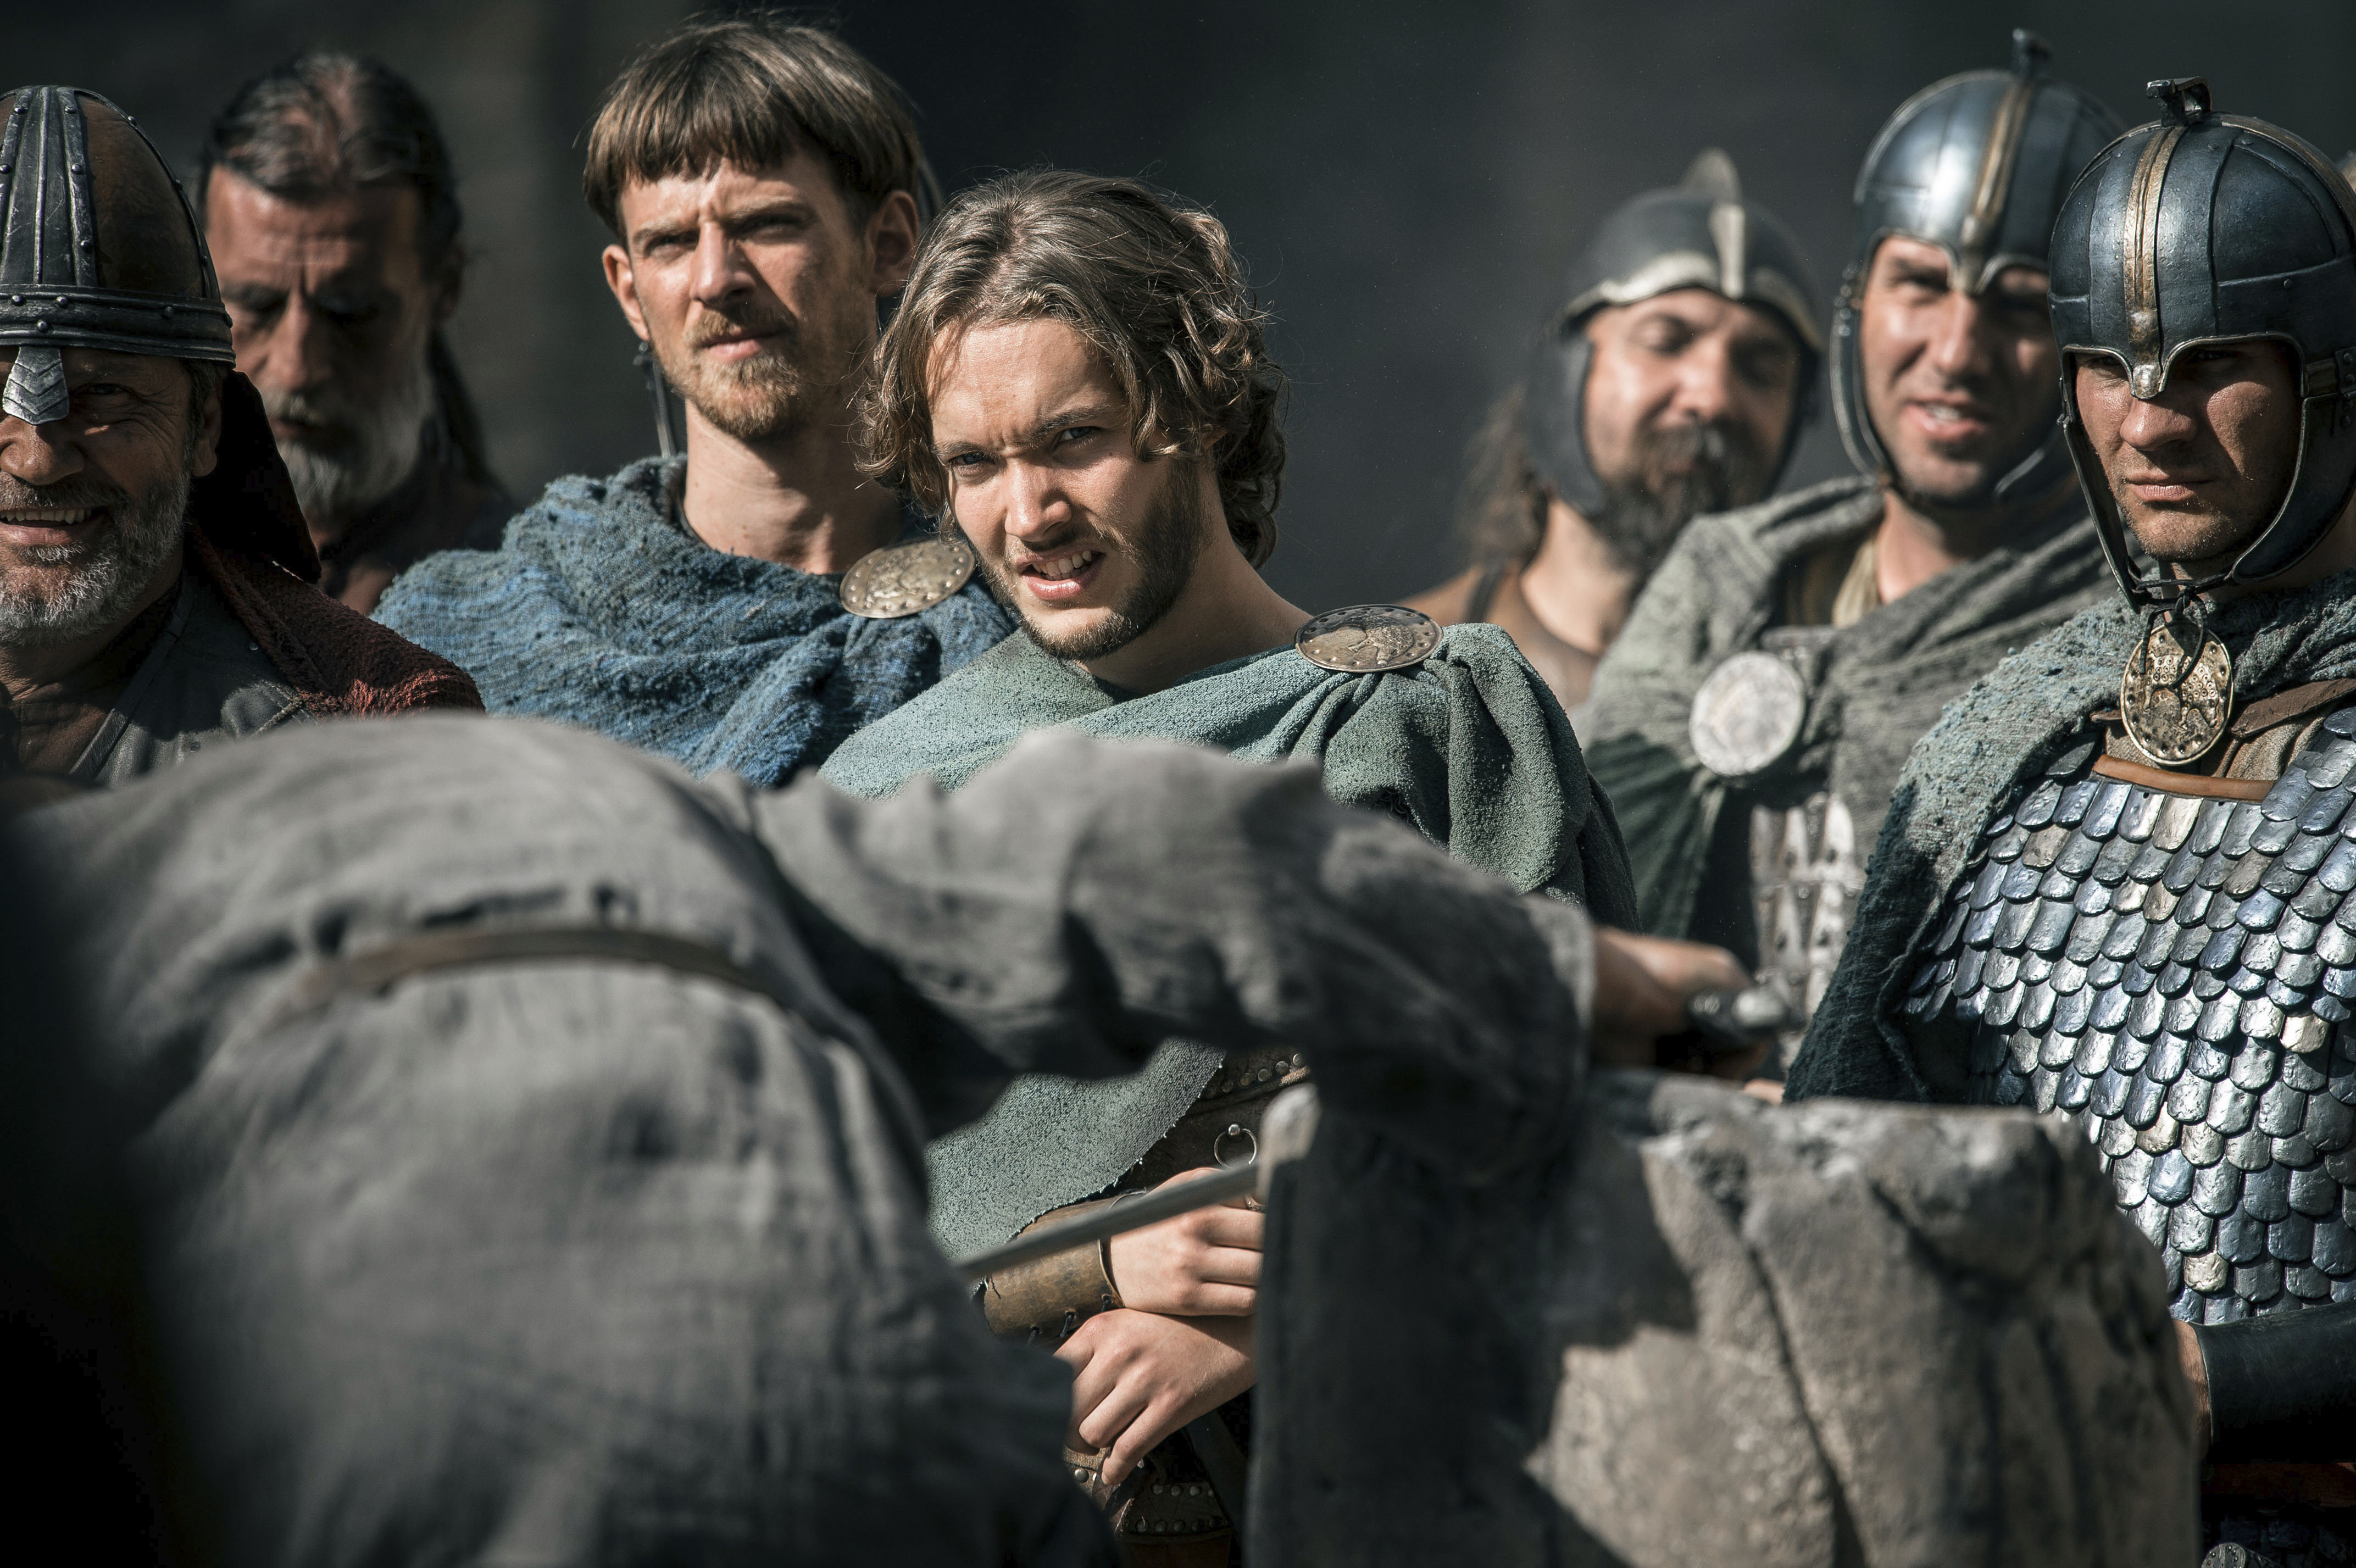 Toby as Aethelred in 'The Last Kingdom' - 2x06 - Promotional Stills